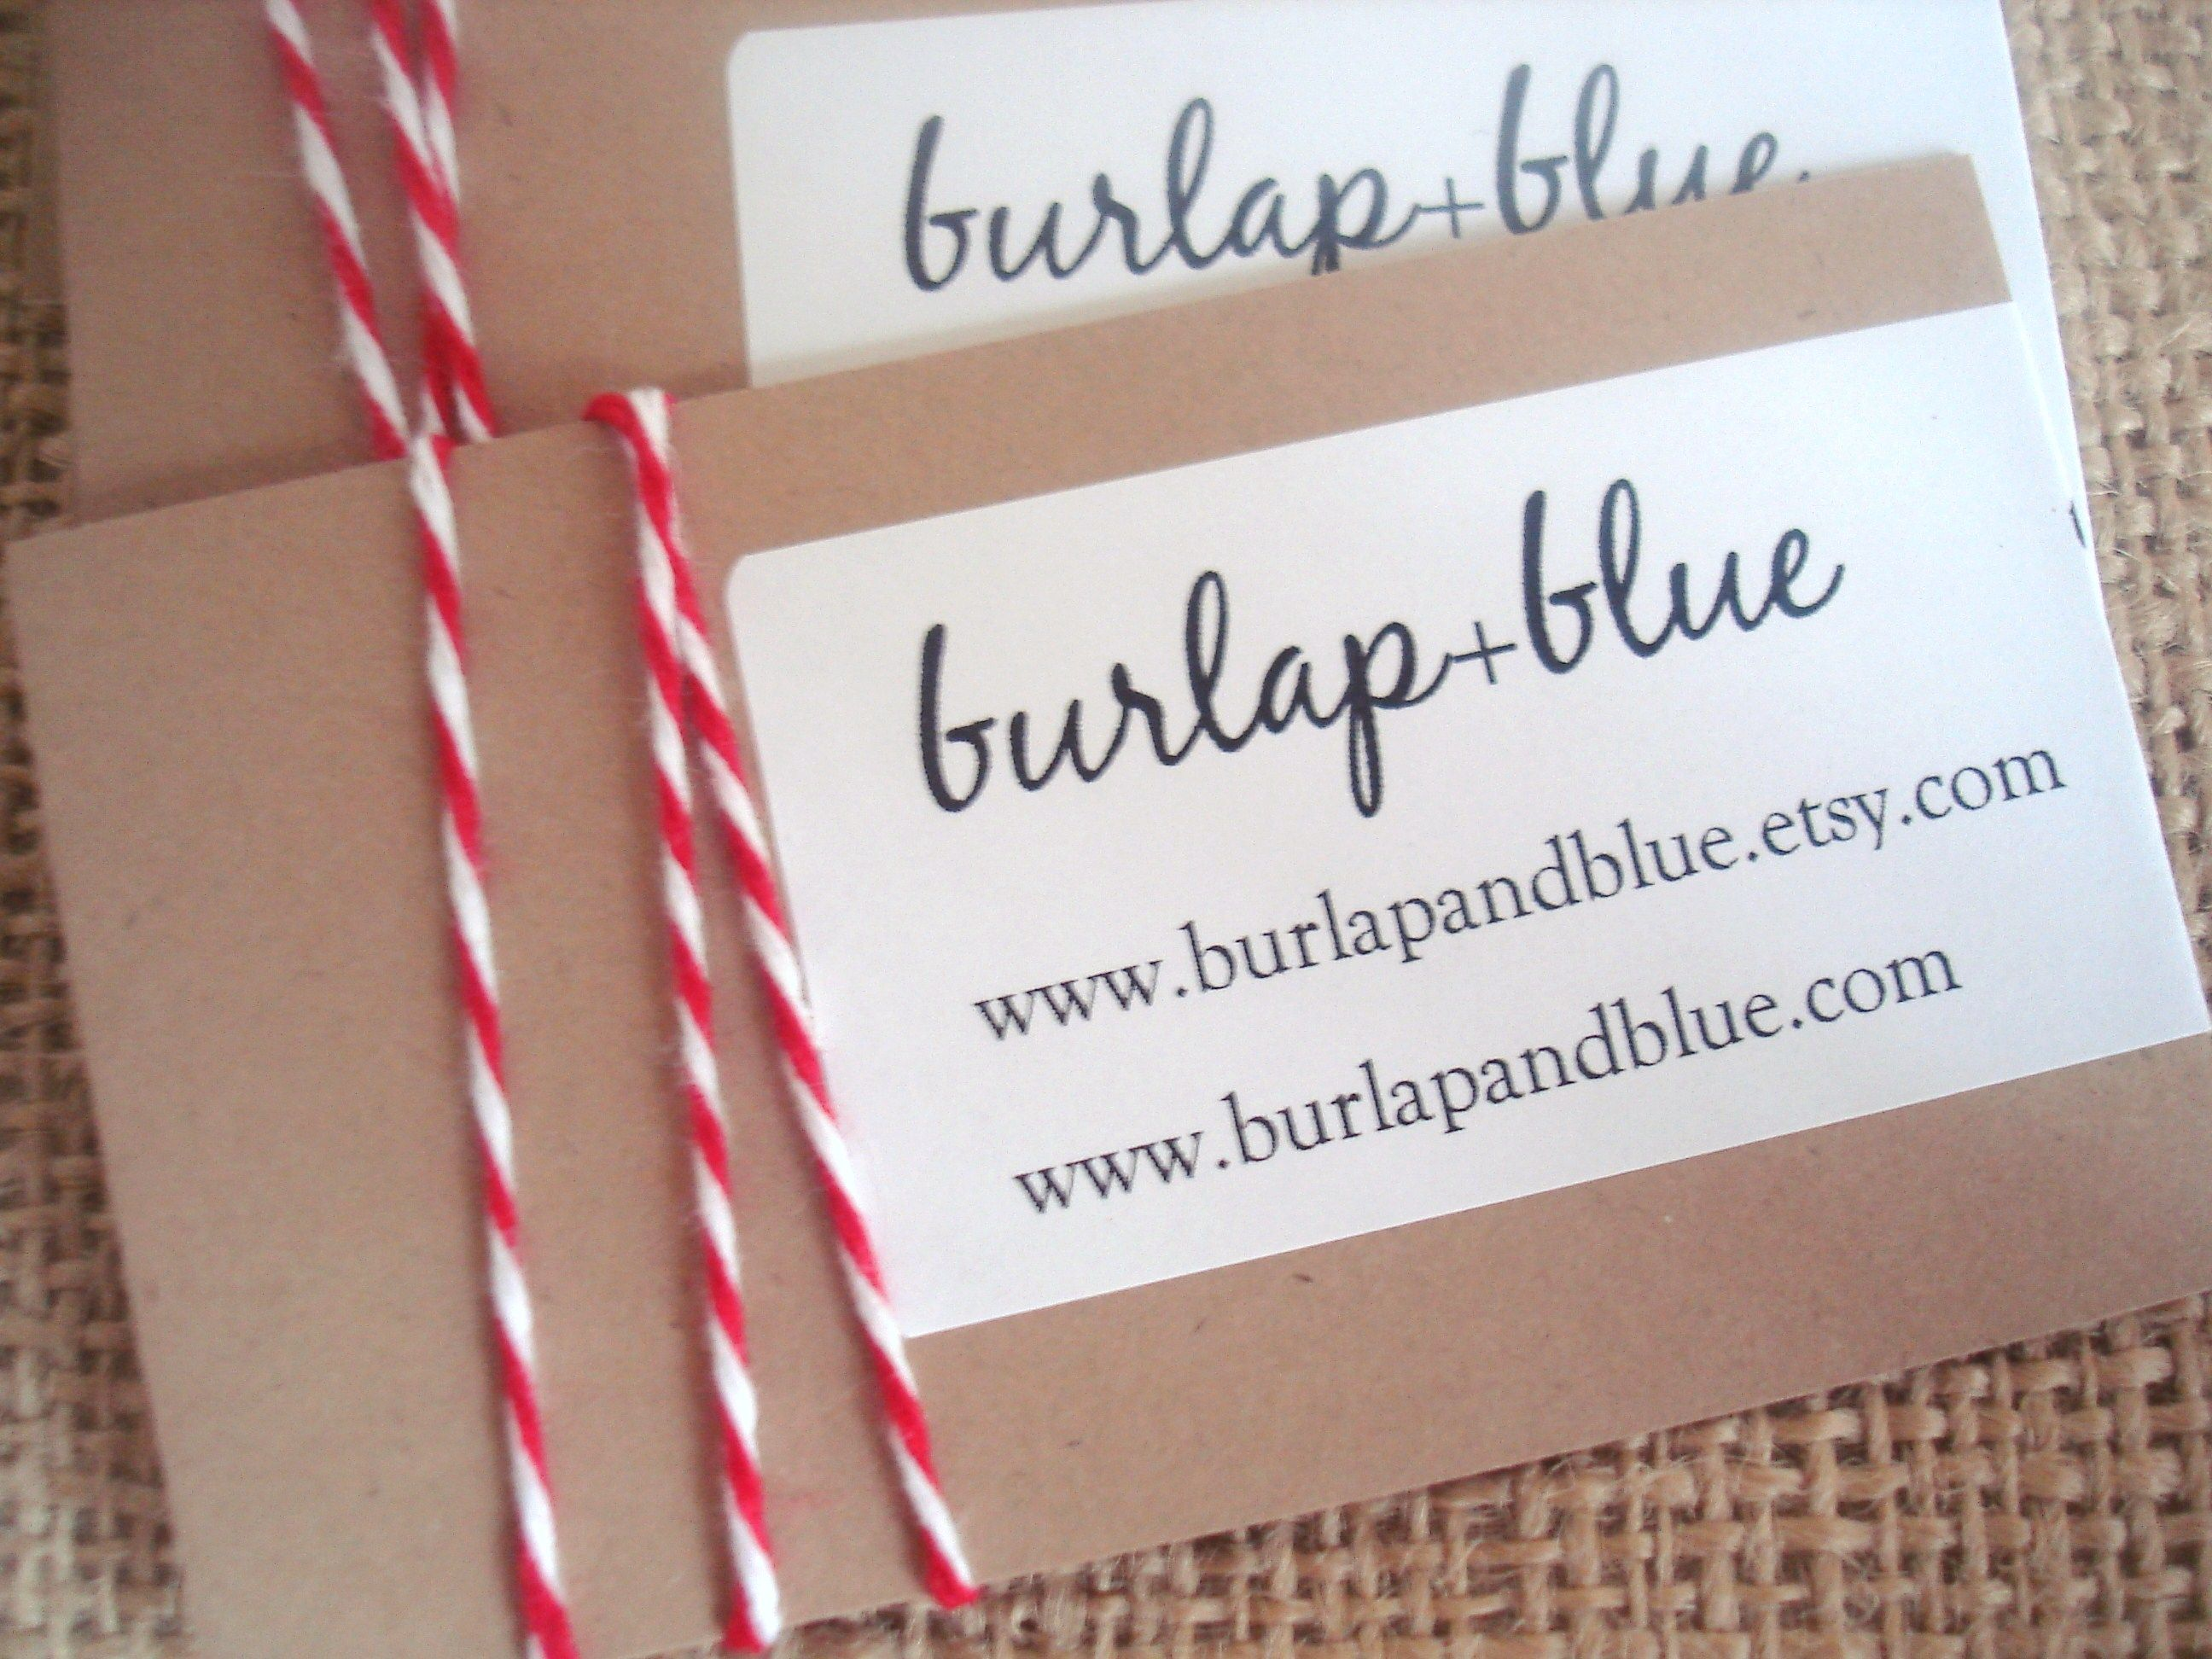 17 Best images about Handmade business cards on Pinterest | Cards ...